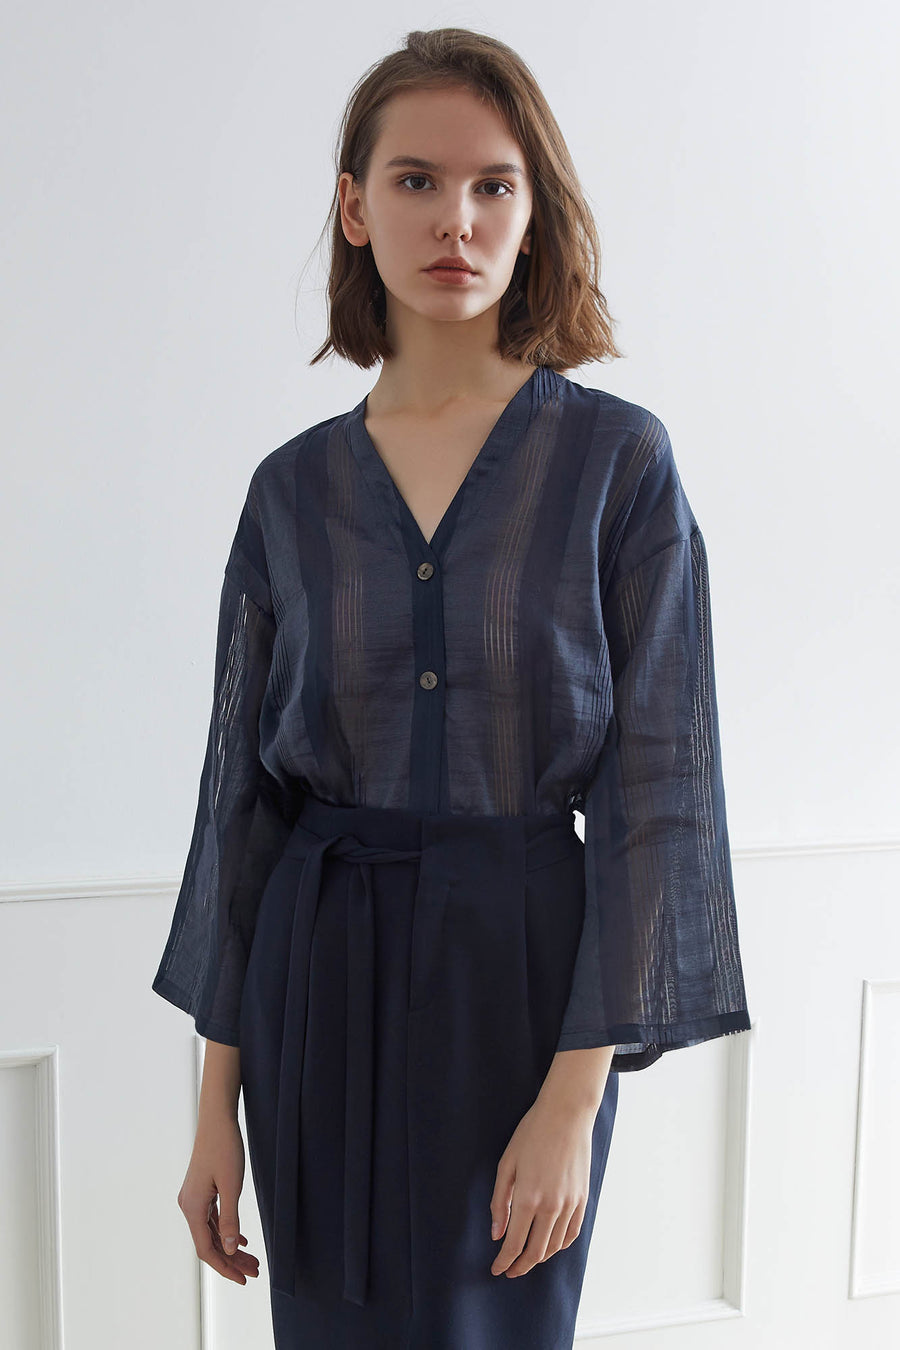 KURUME Tie-front Blouse with Diaphanous Stripes